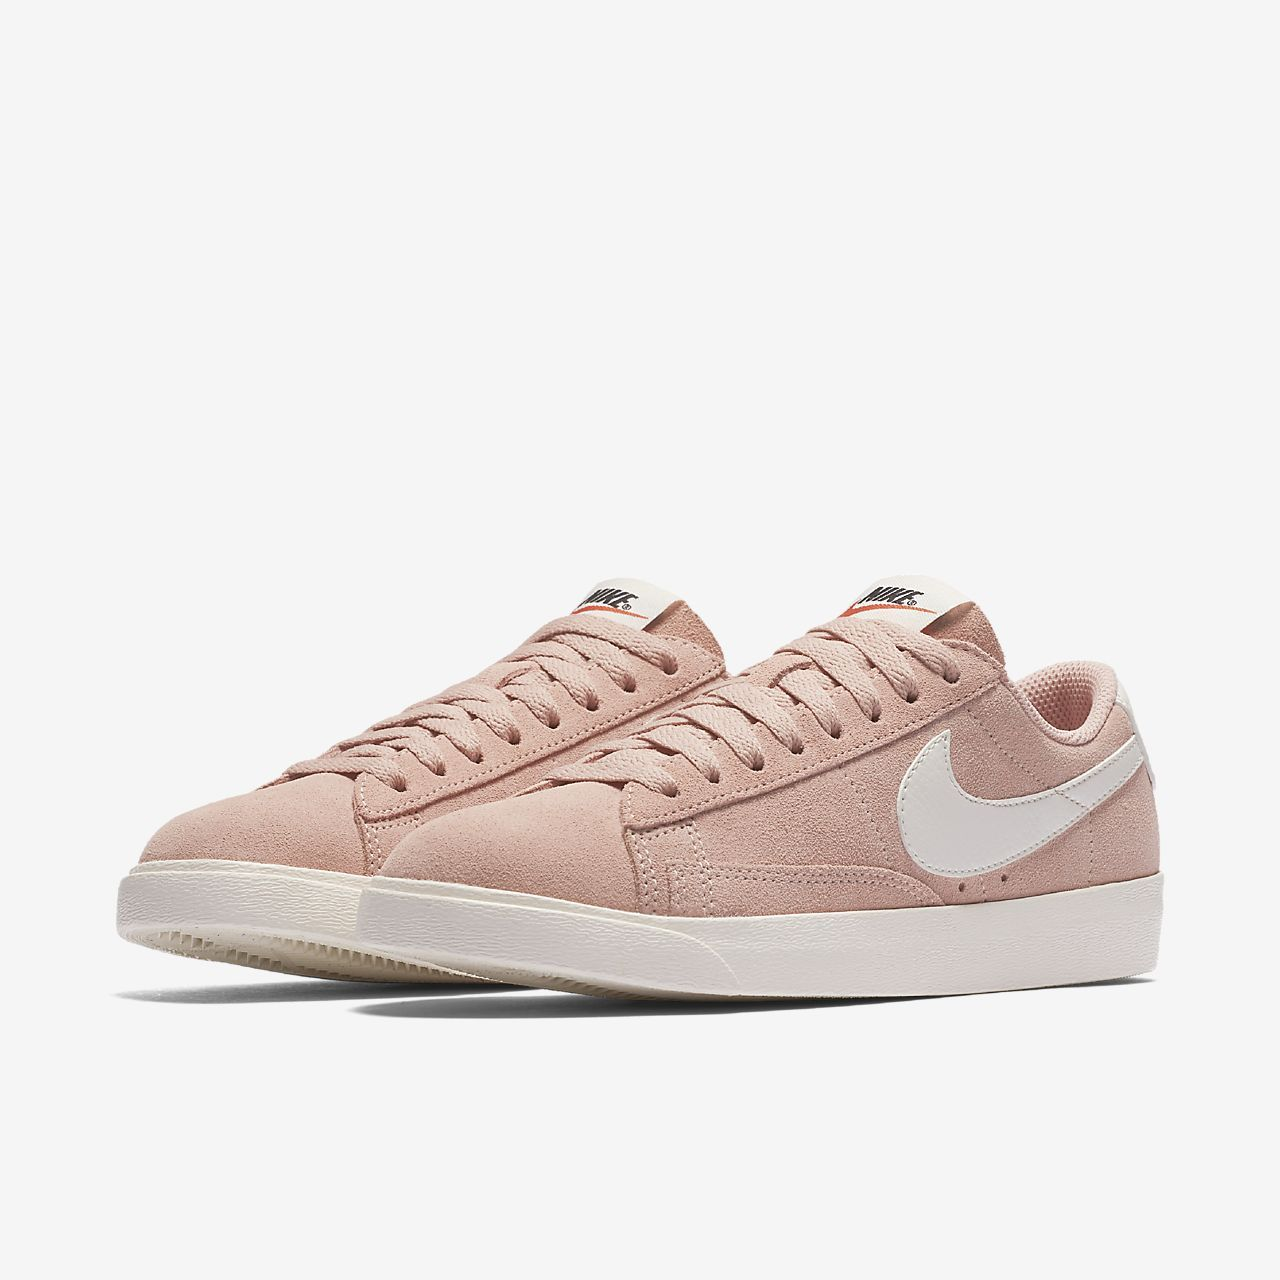 info for 1667f f9bff Chaussure Nike Blazer Low pour Femme